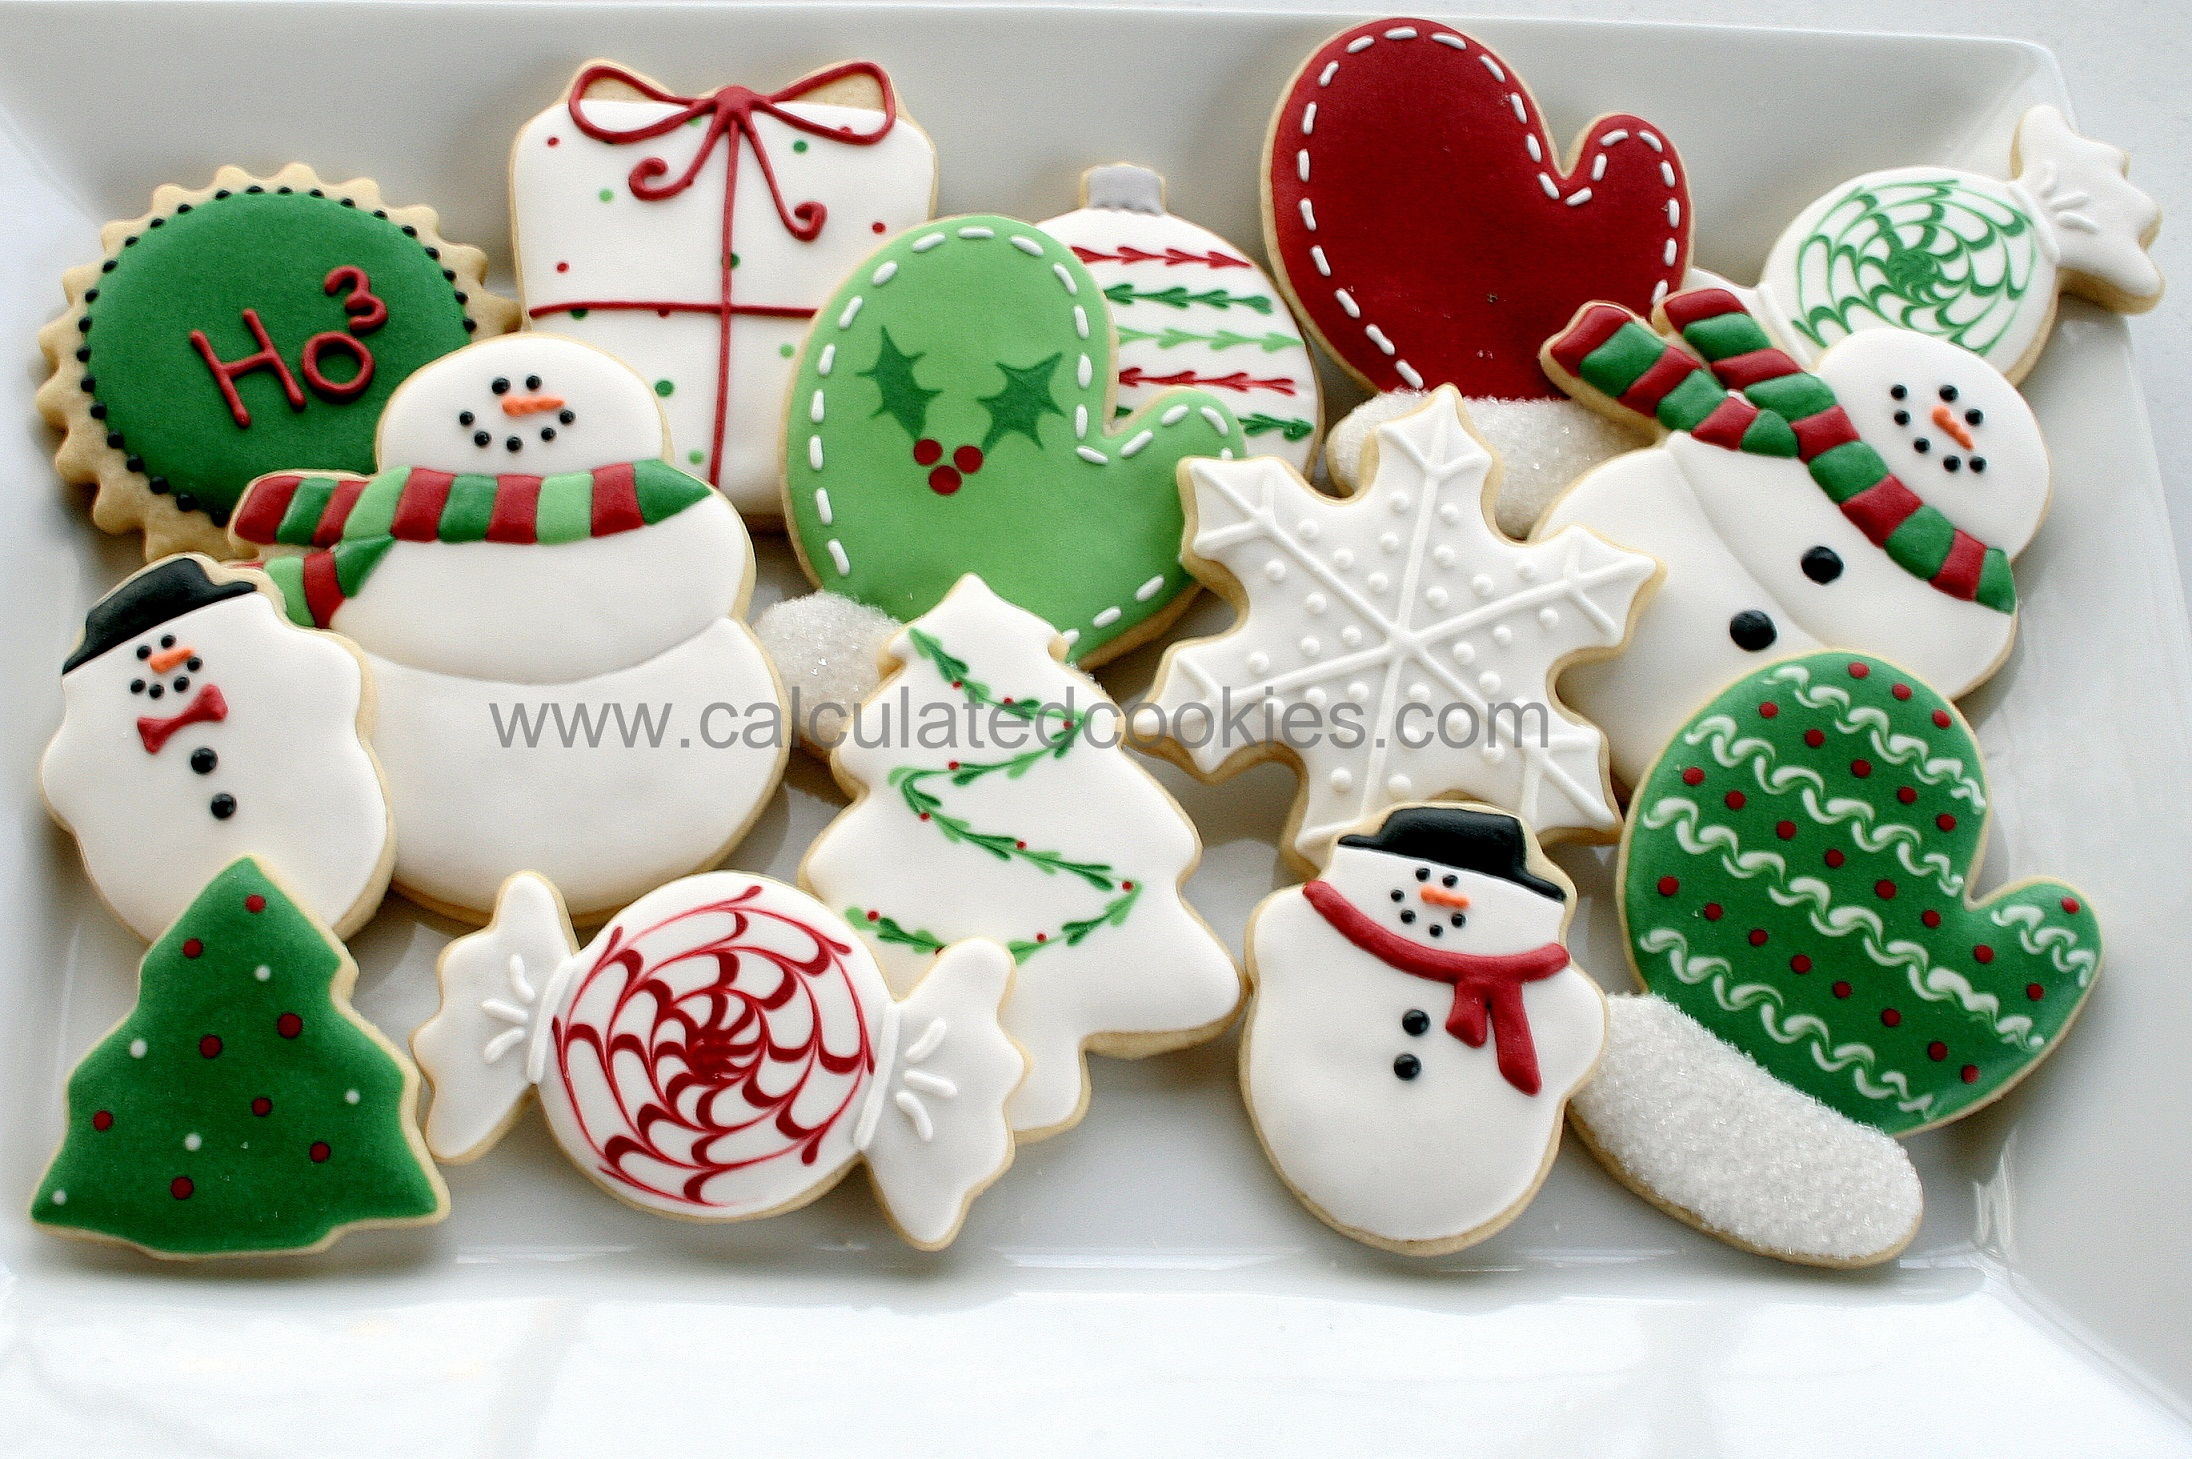 019 001resize - Decorations For Christmas Sugar Cookies